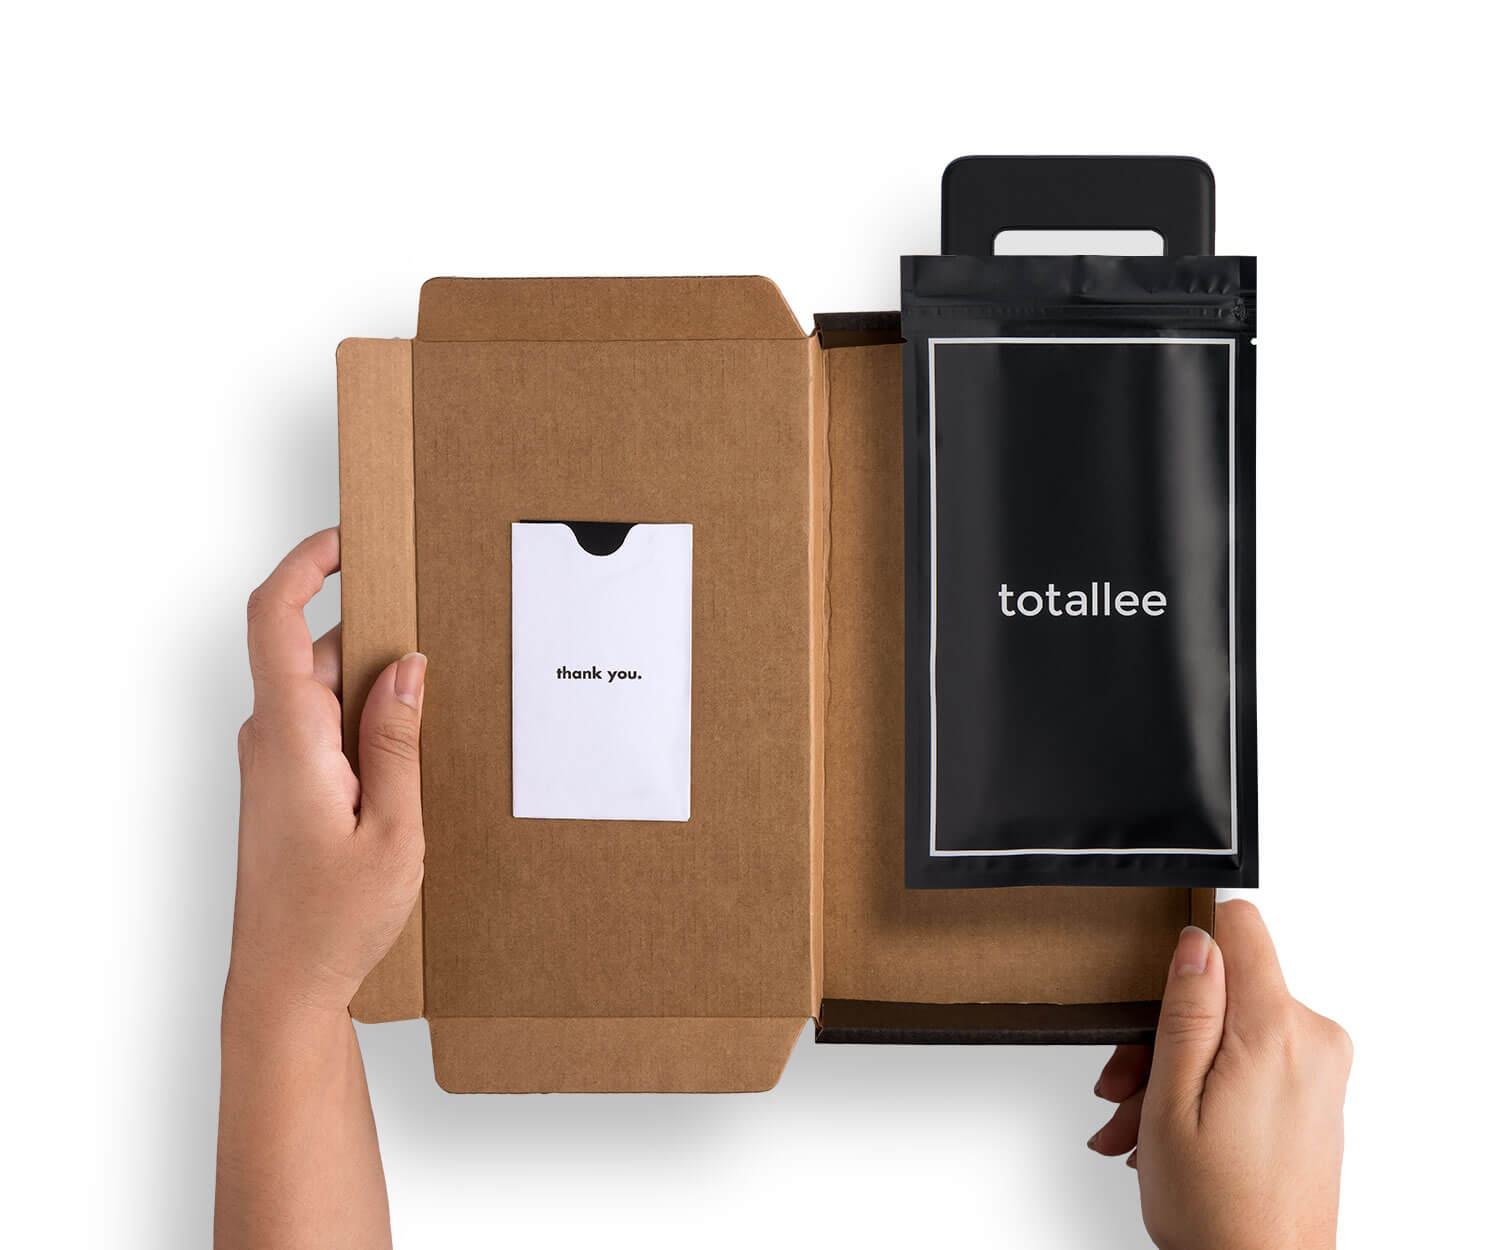 Kraft packaging for totallee's thin Galaxy S10 case